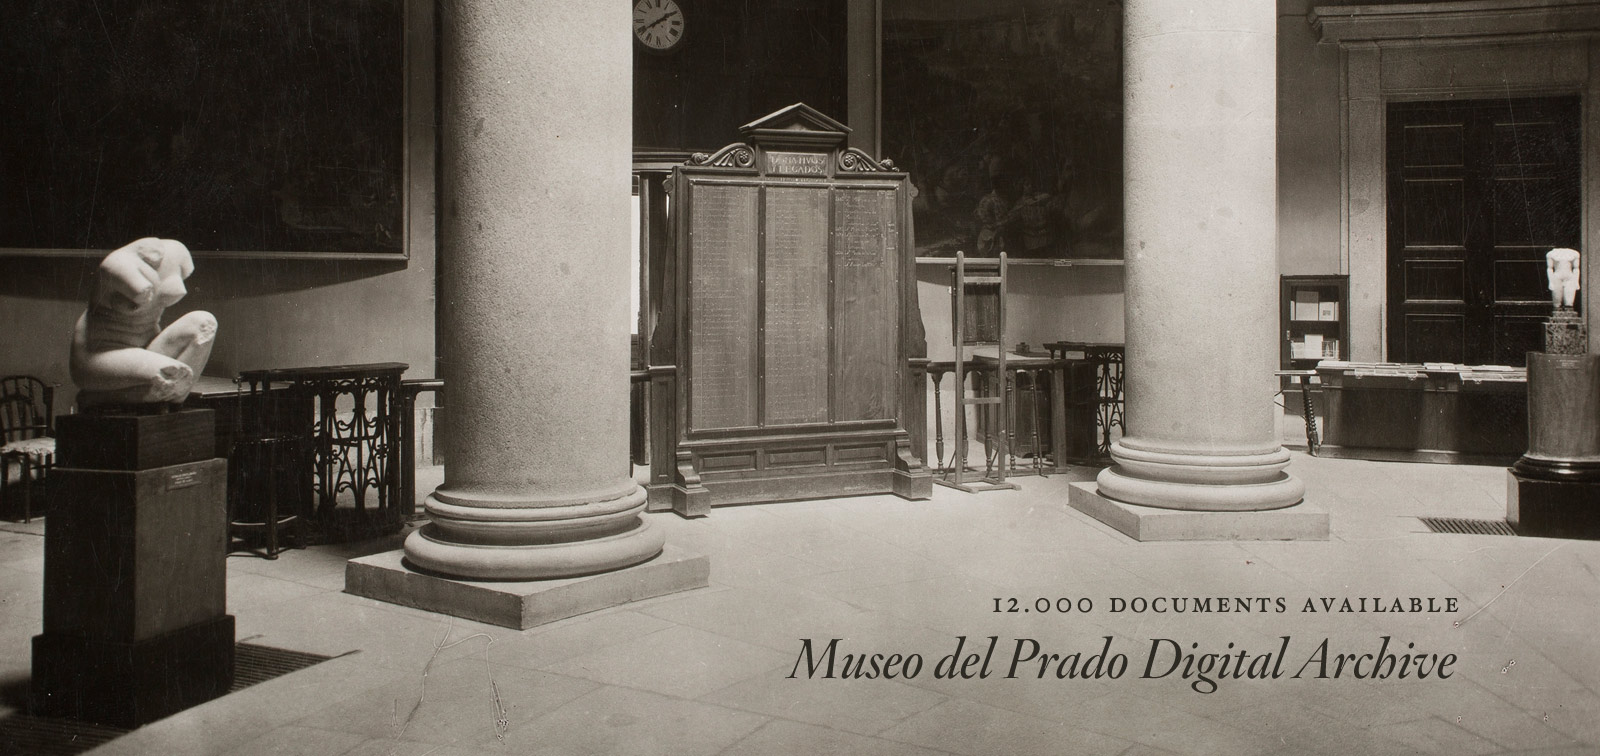 Museo del Prado Digital Archive